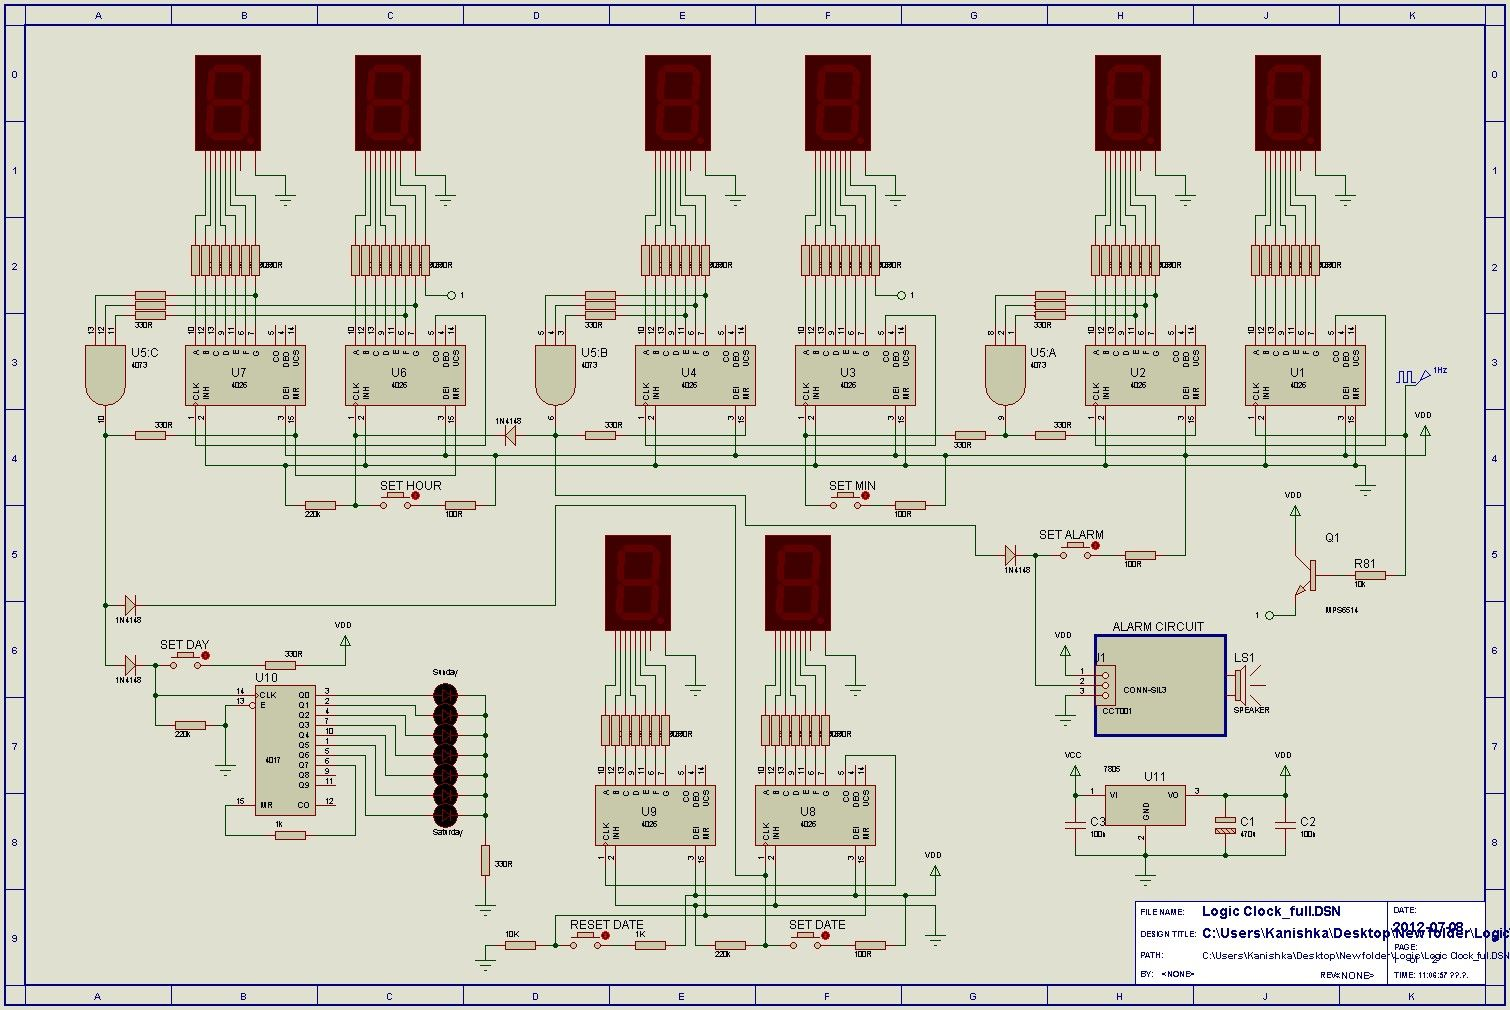 24hr digital clock and alarm circuit using logic ics cd4017  [ 1510 x 1010 Pixel ]